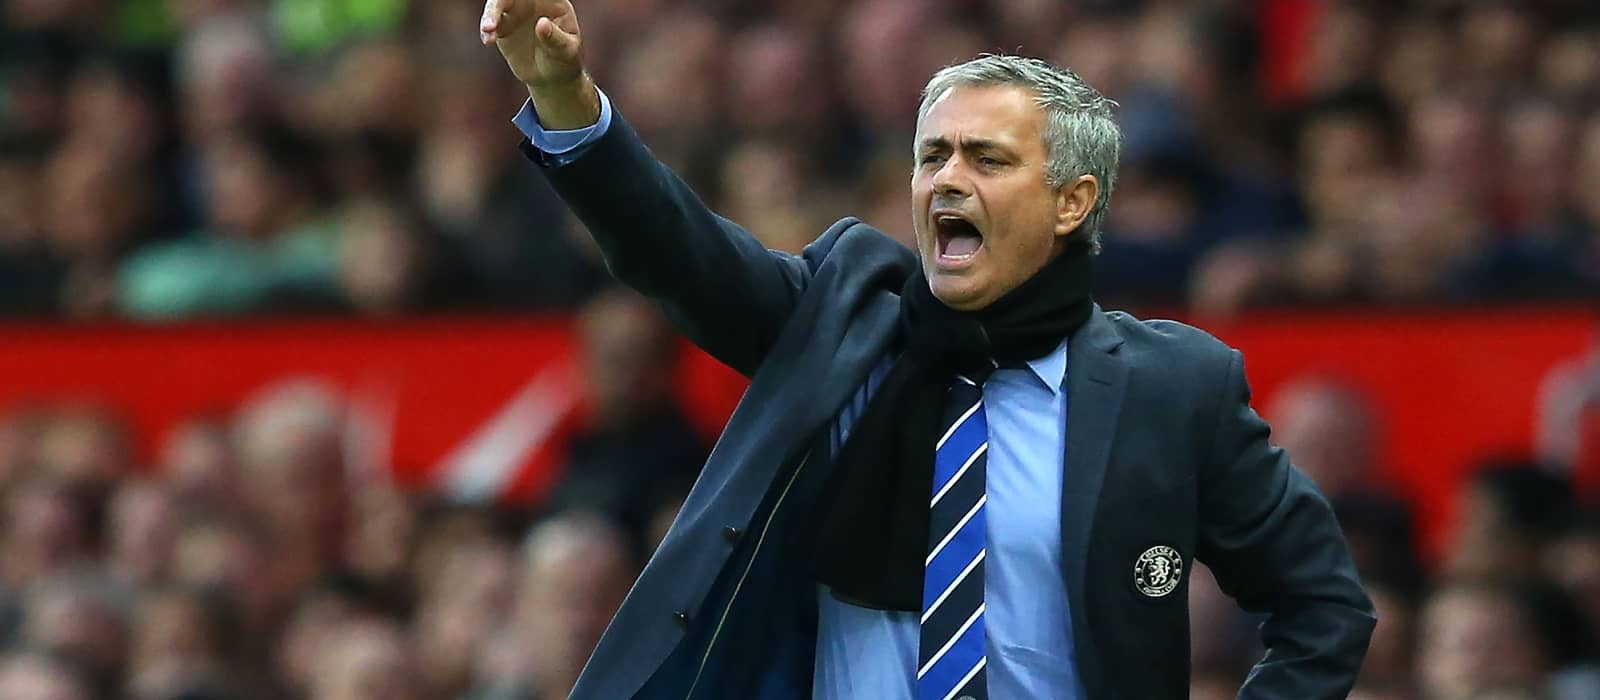 Jose Mourinho already working on transfers ahead of Manchester United move – report